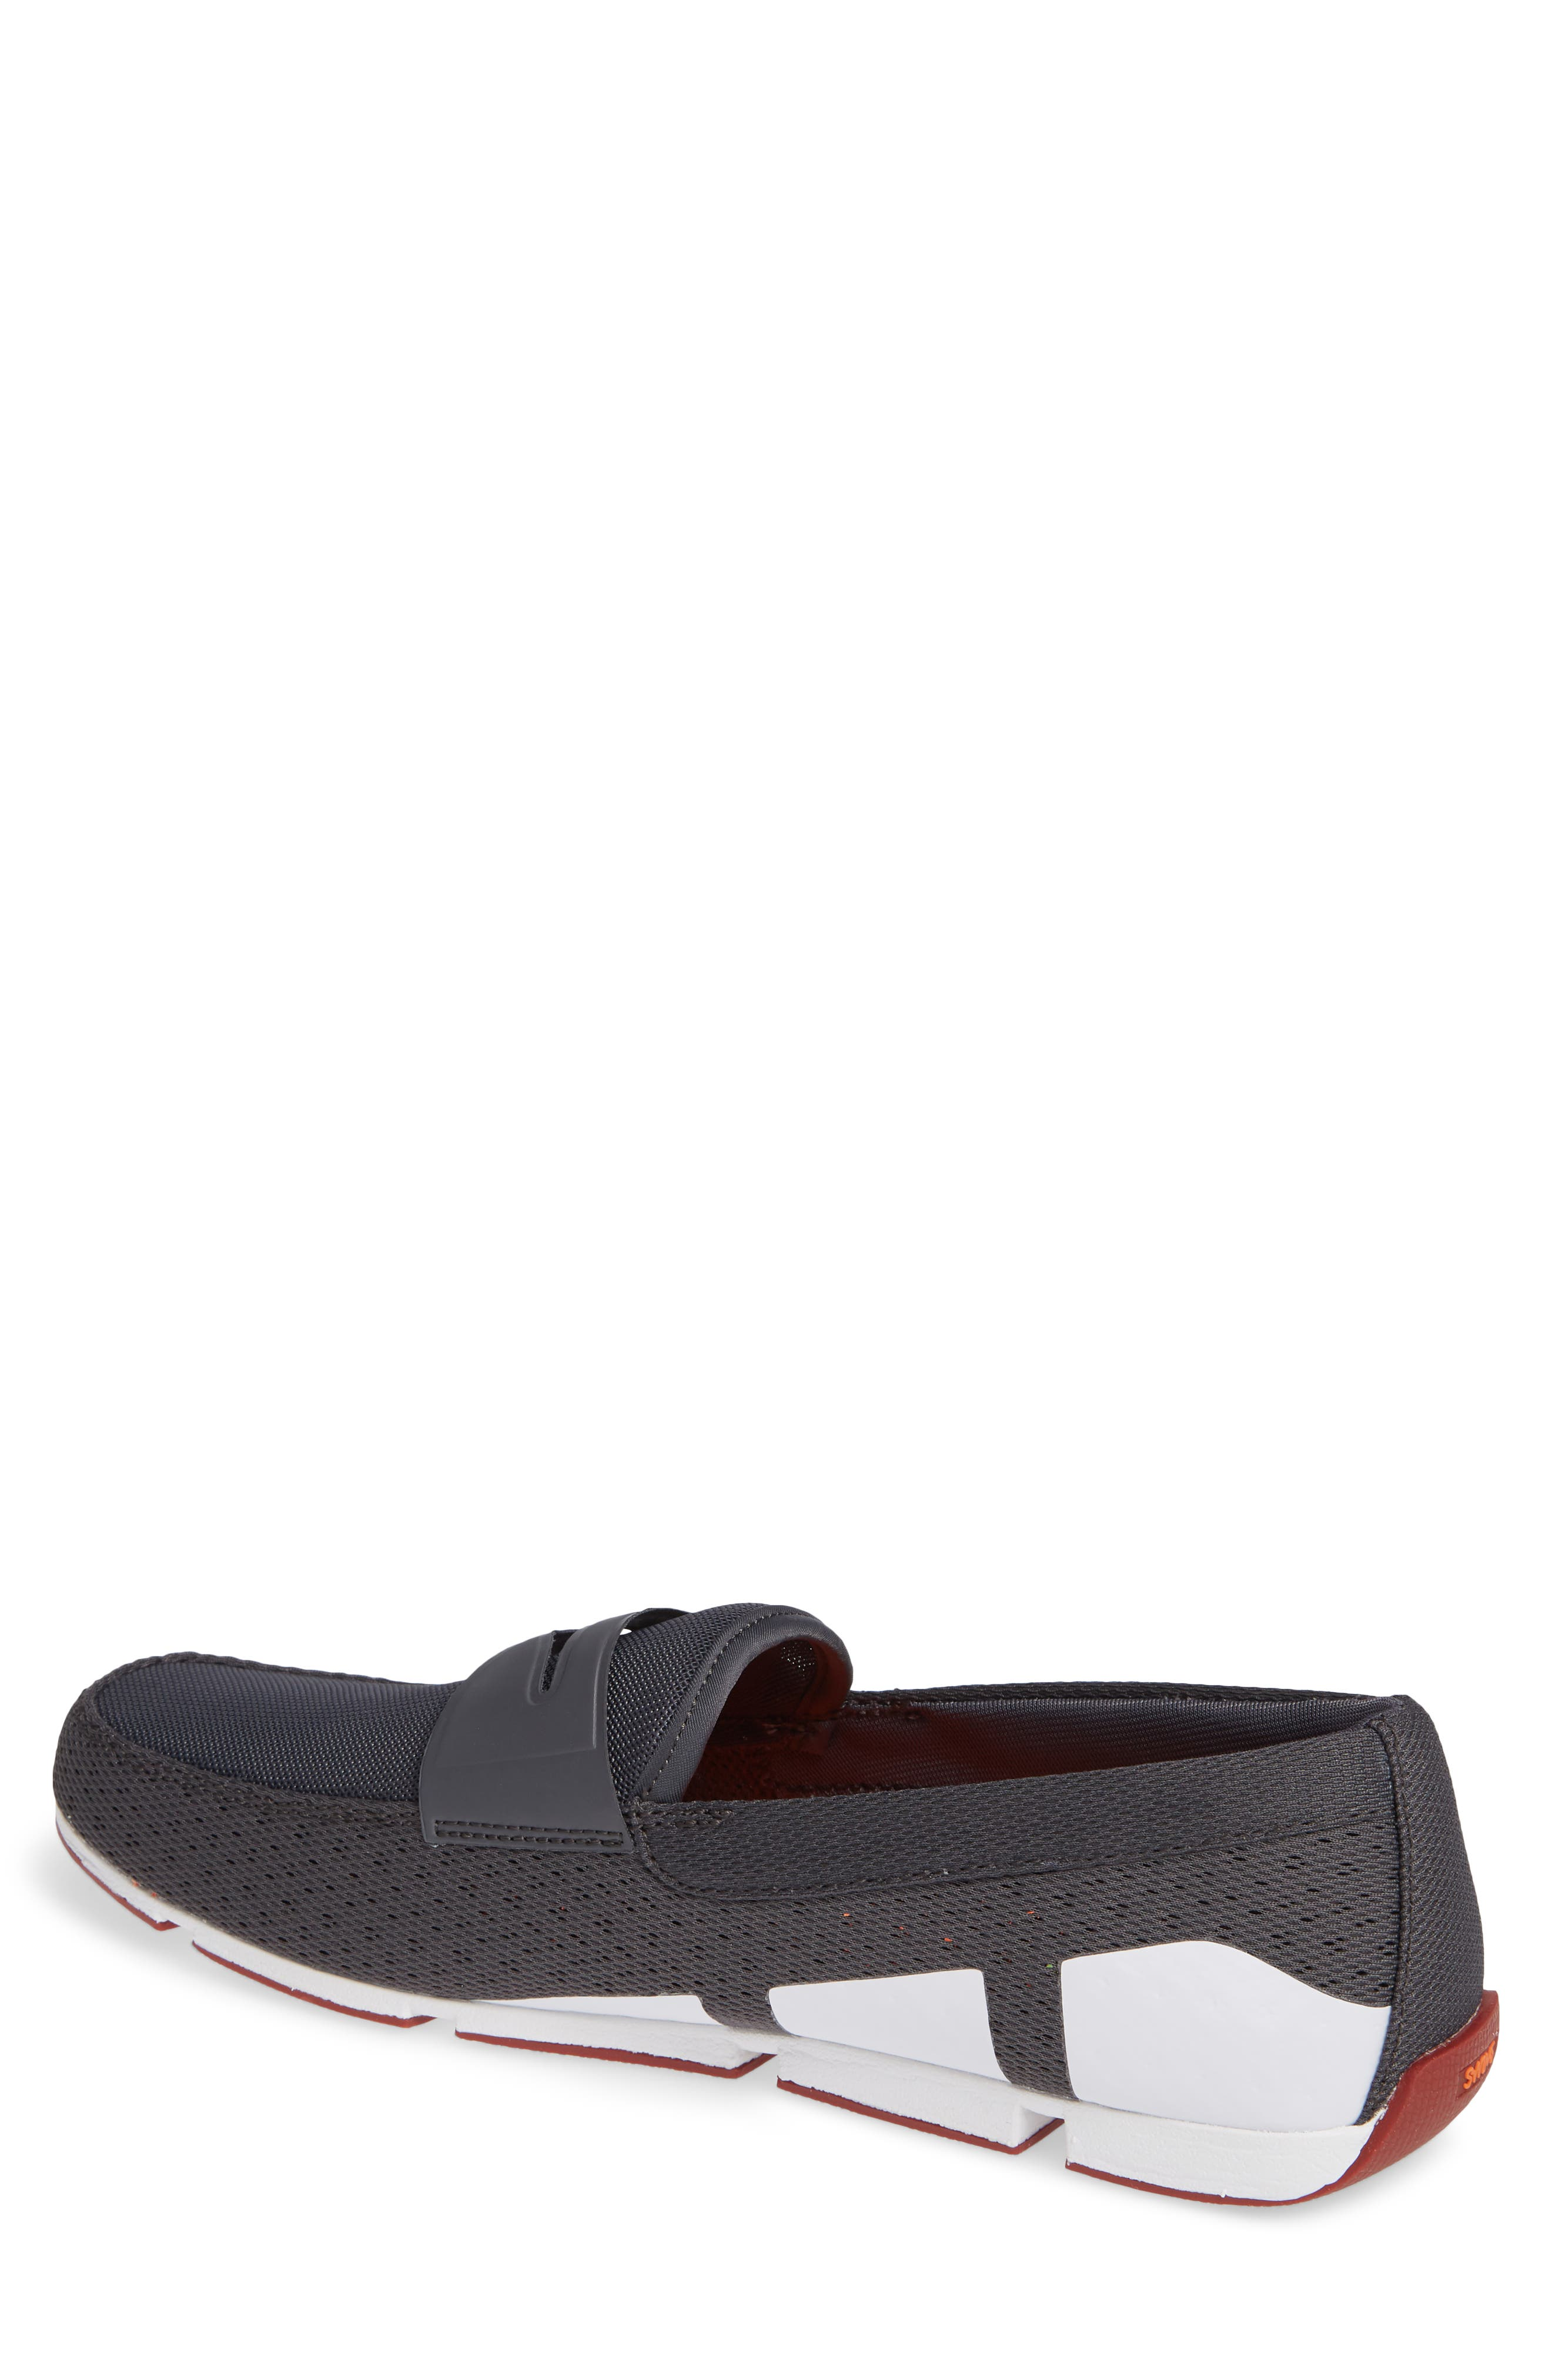 Breeze Penny Loafer,                             Alternate thumbnail 2, color,                             DARK GRAY/RED LACQUER